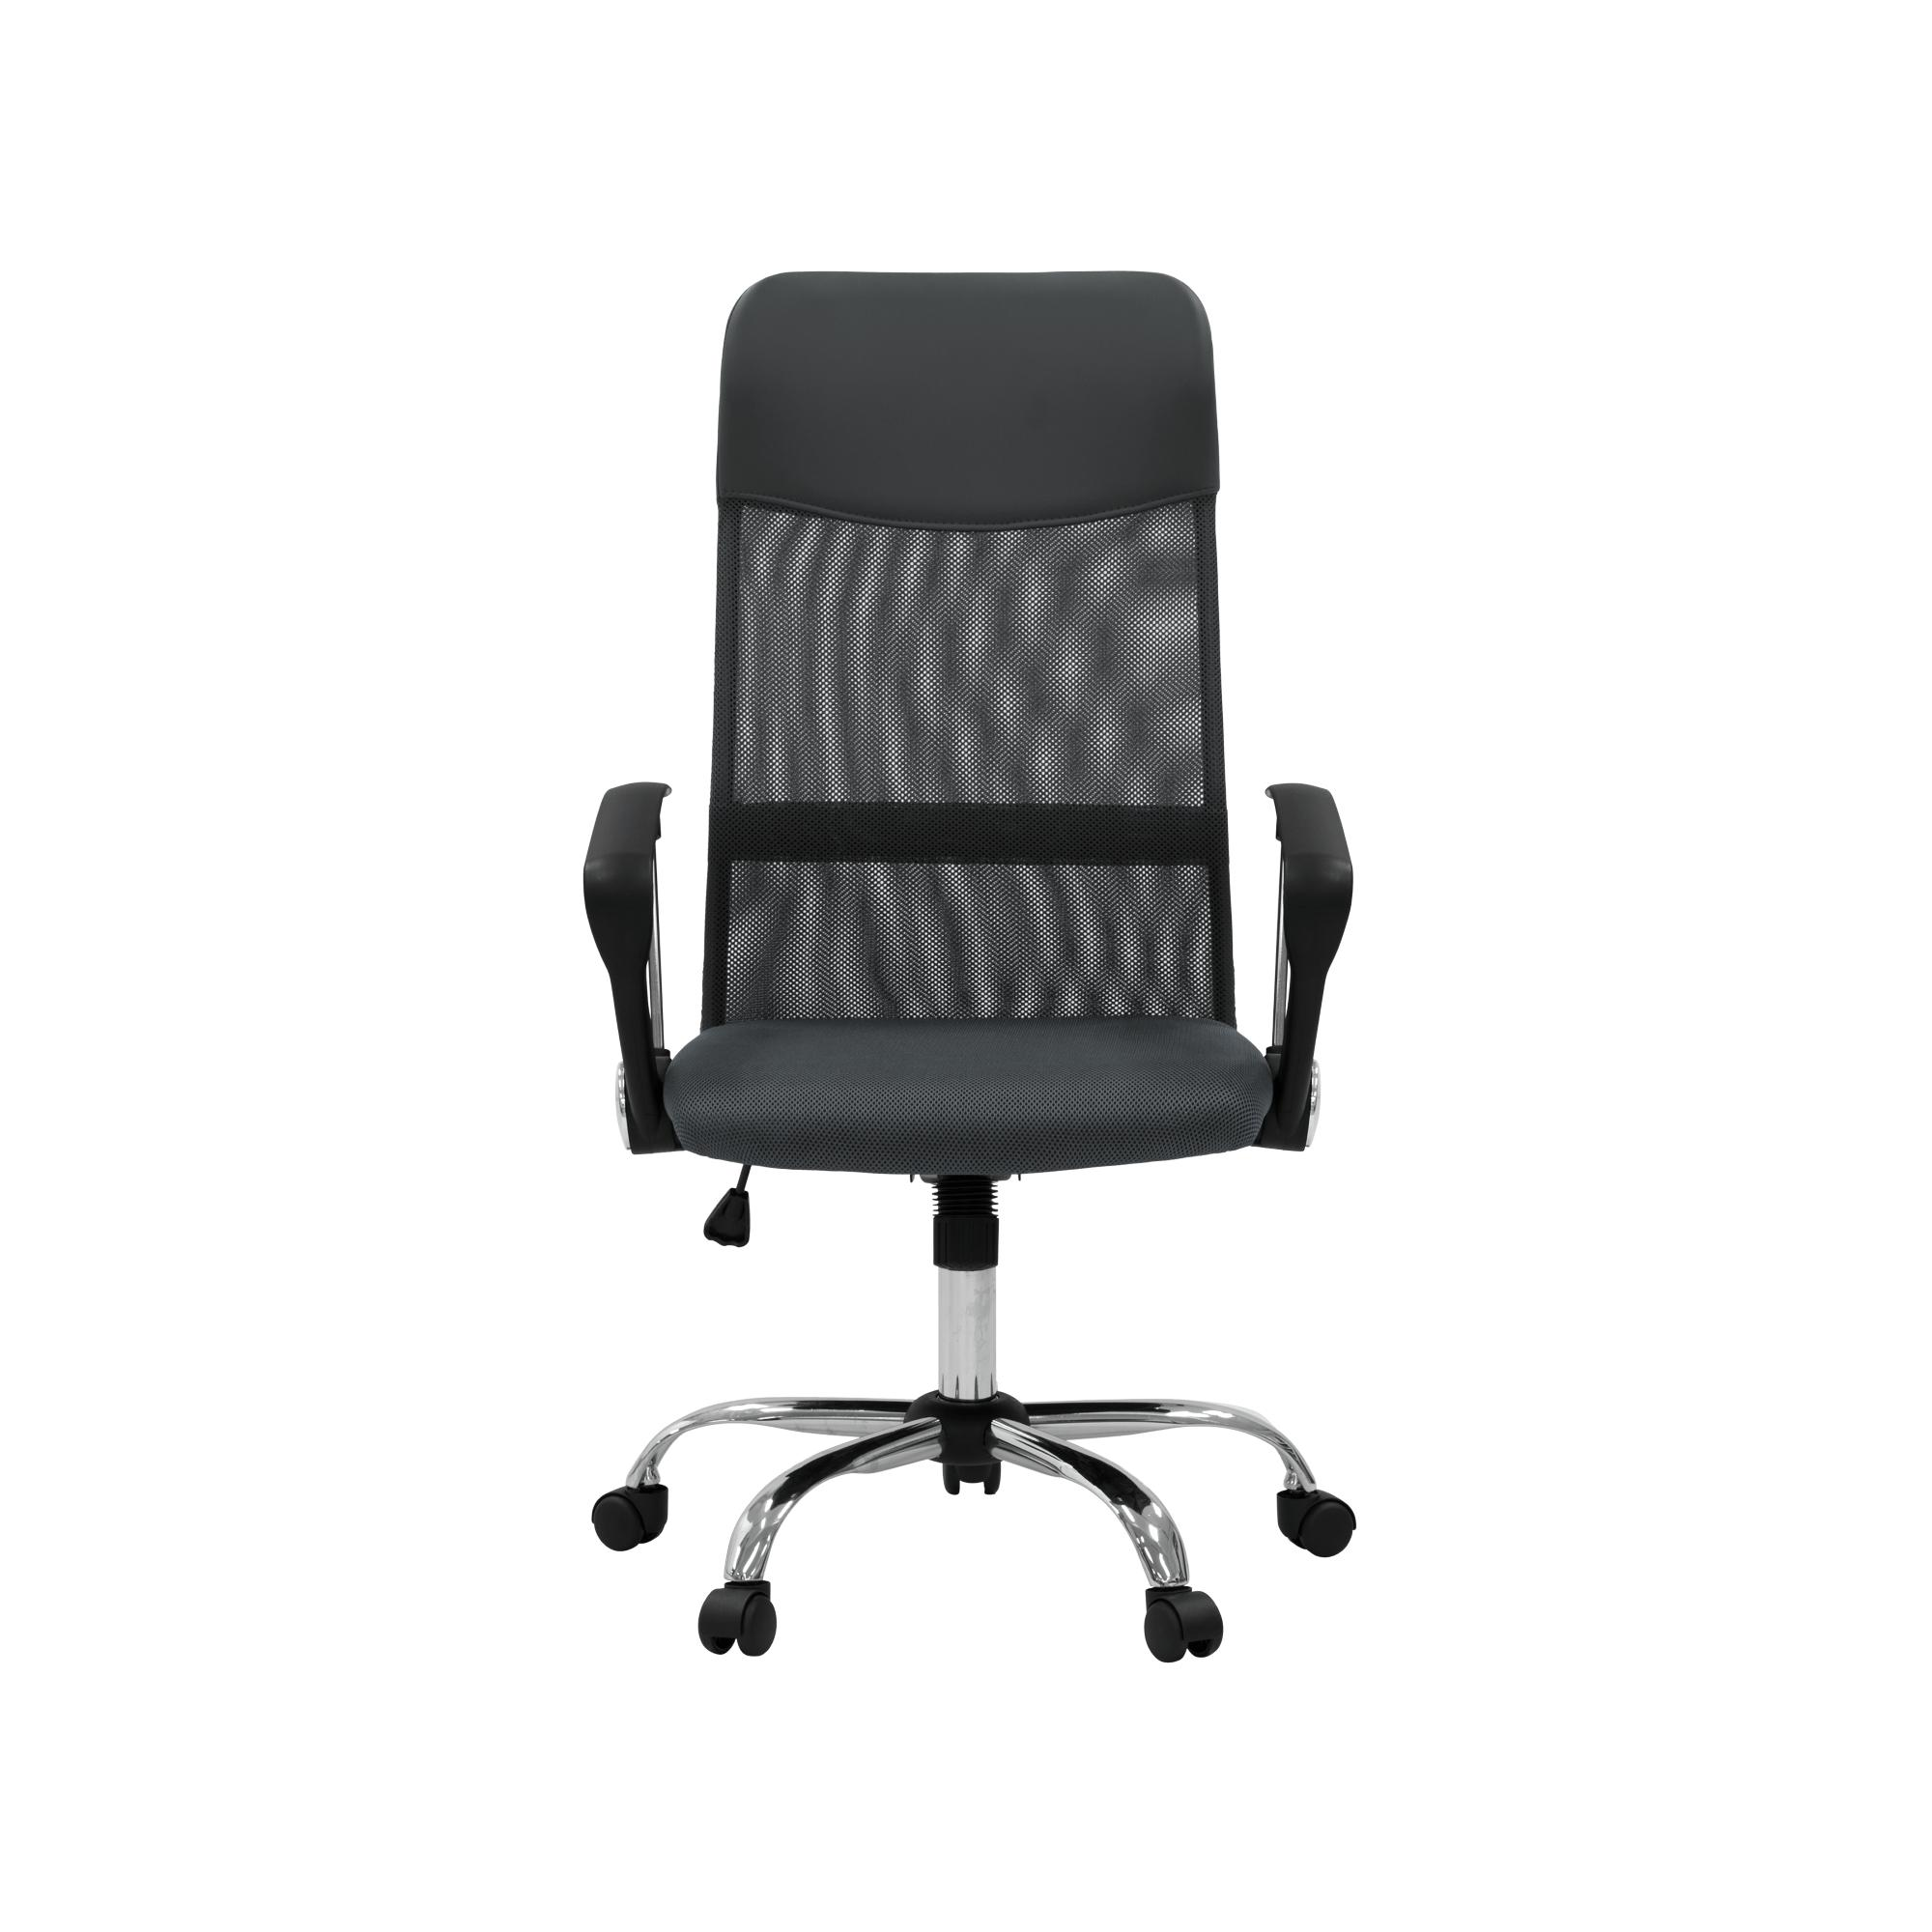 HipVan Cory High Back Office Chair - Grey - Self-Assembly